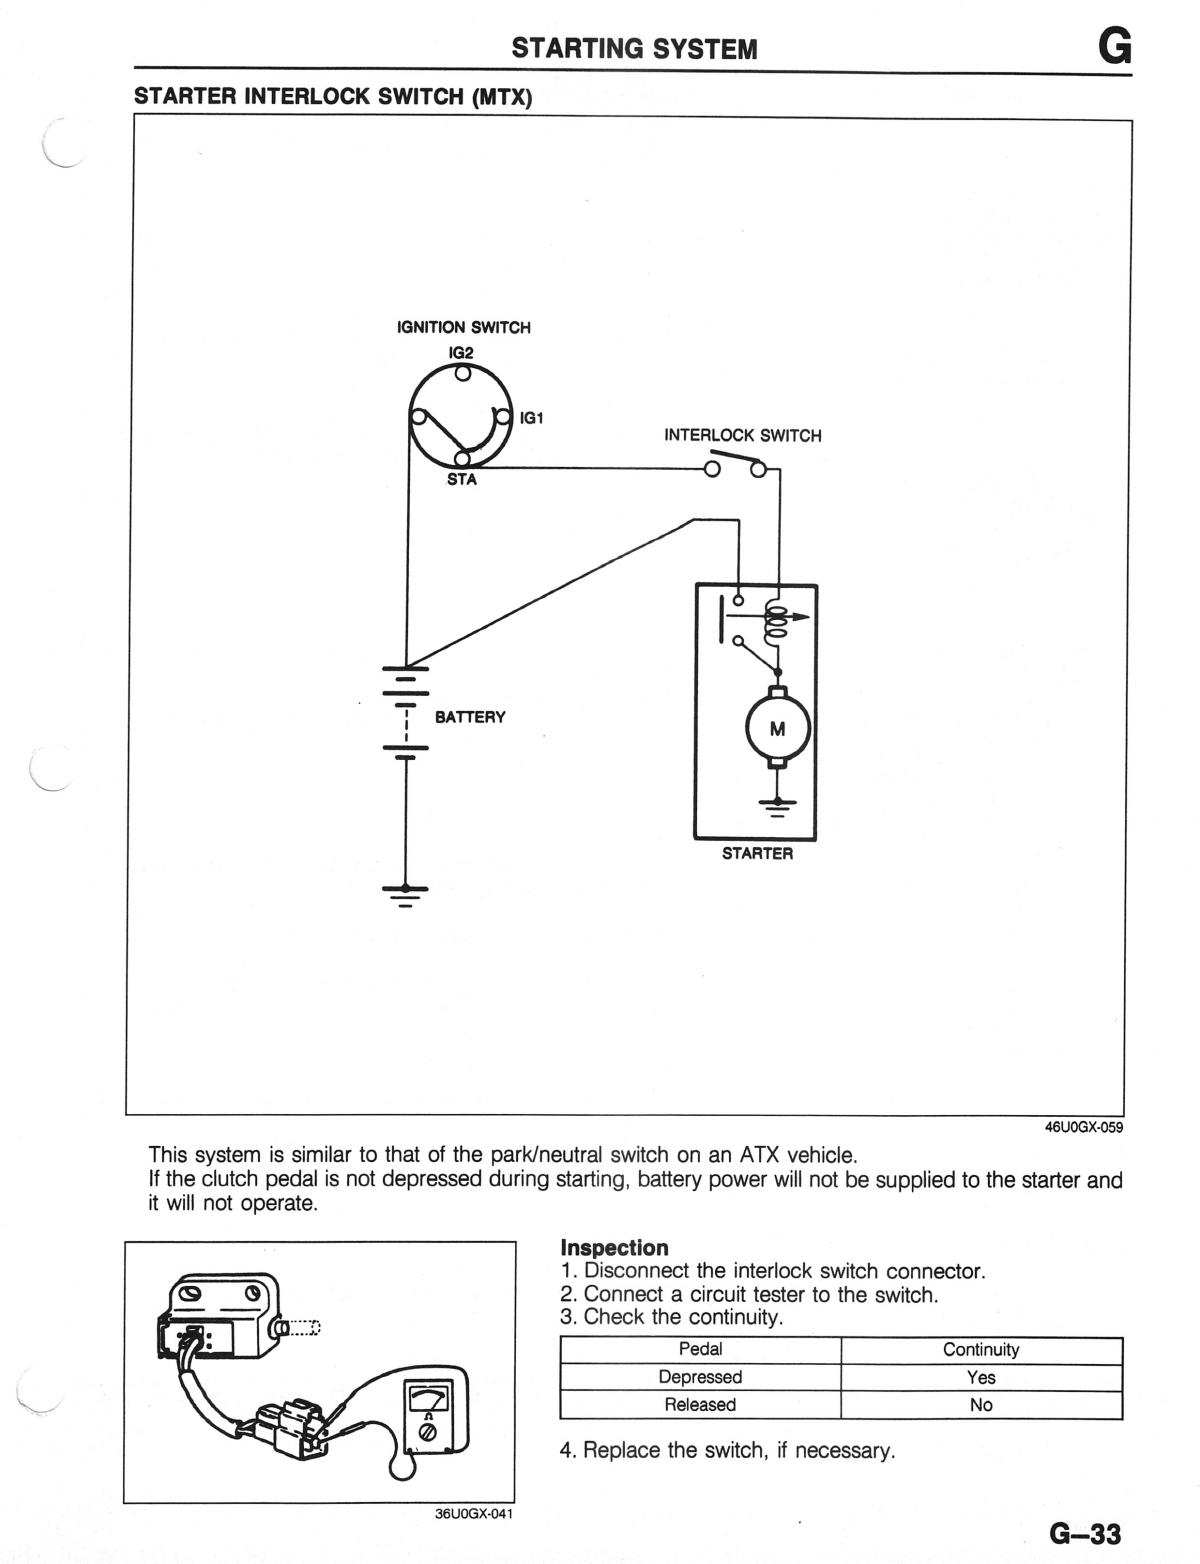 hight resolution of 1996 626 ignition switch wiring 1993 2002 2l i4 mazda626 net rh mazda626 net 2002 mazda 626 wiring diagram wiring diagram for 1998 mazda